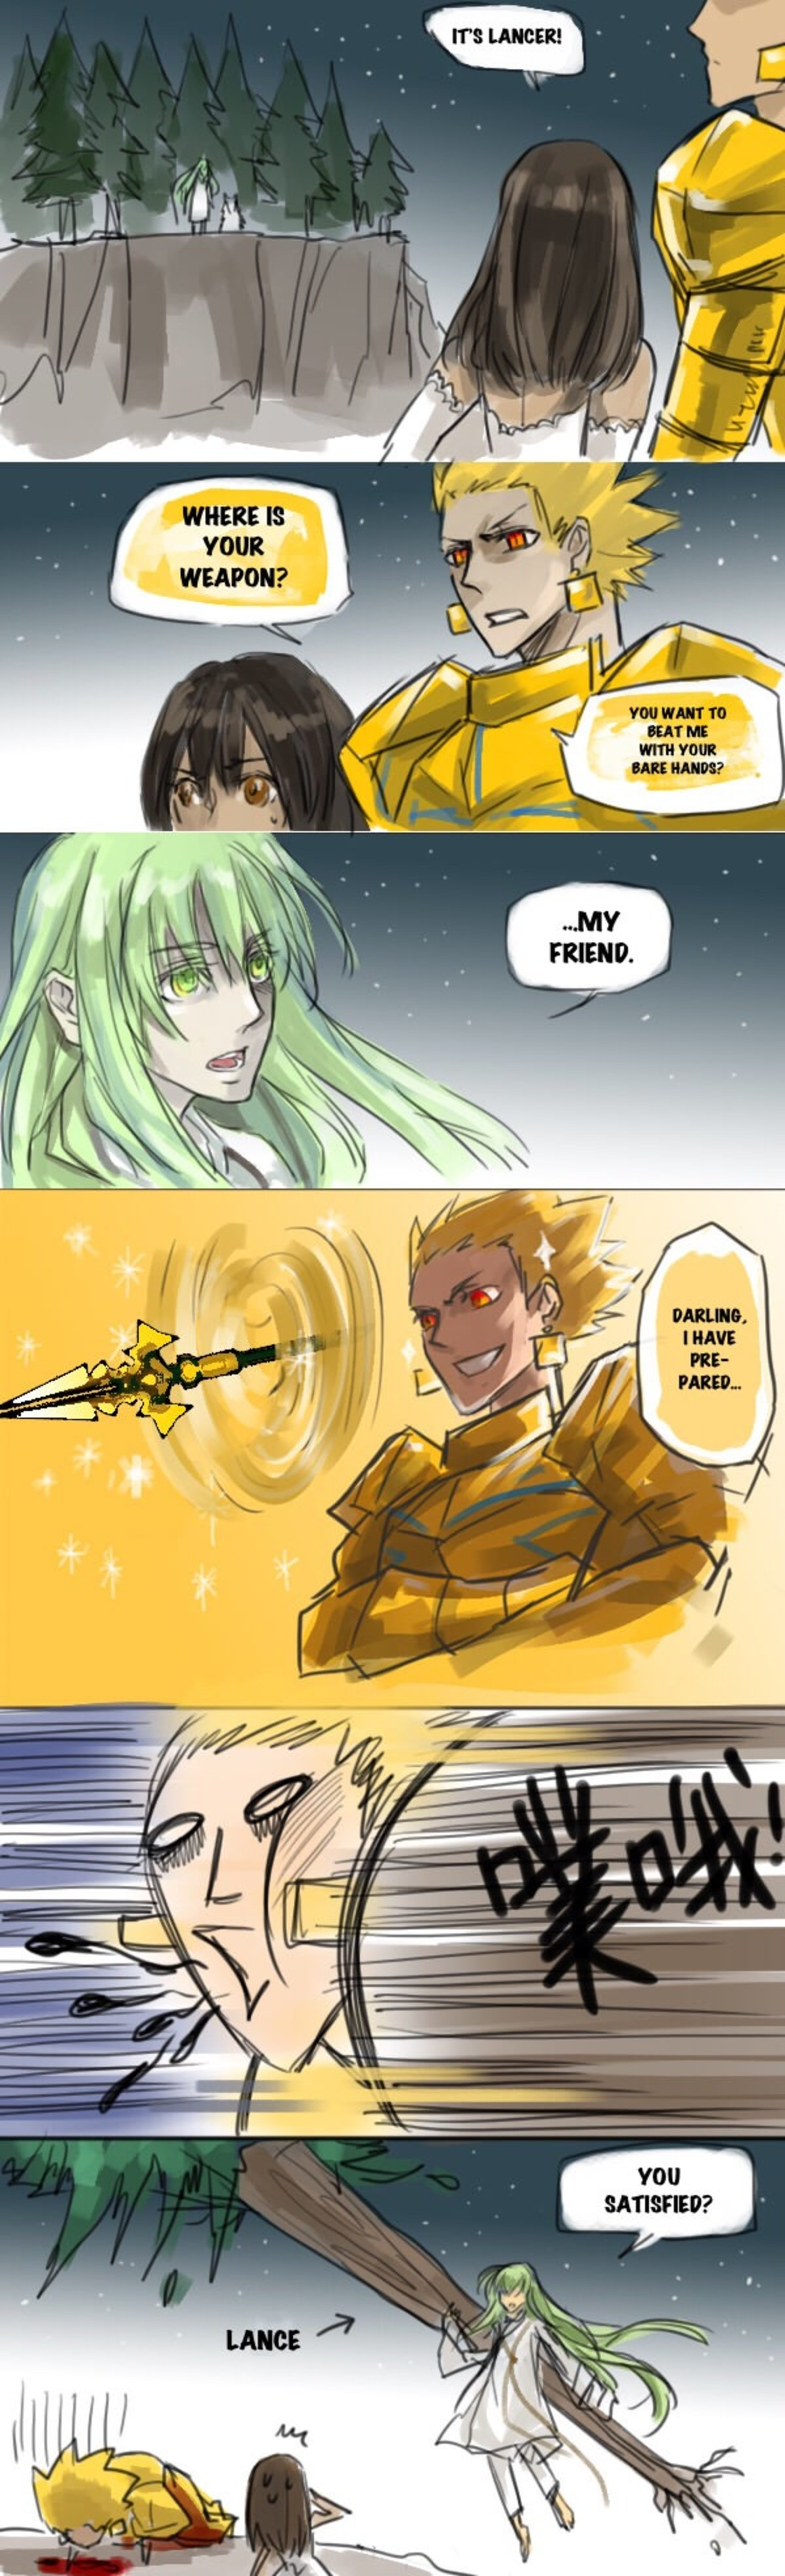 Gilgamesh vs Enkidu. Source vsenkidu/ join list: Fate (414 subs)Mention History join list:. I want to say it's not, but most 'Lancers' don't use Lances anyway.